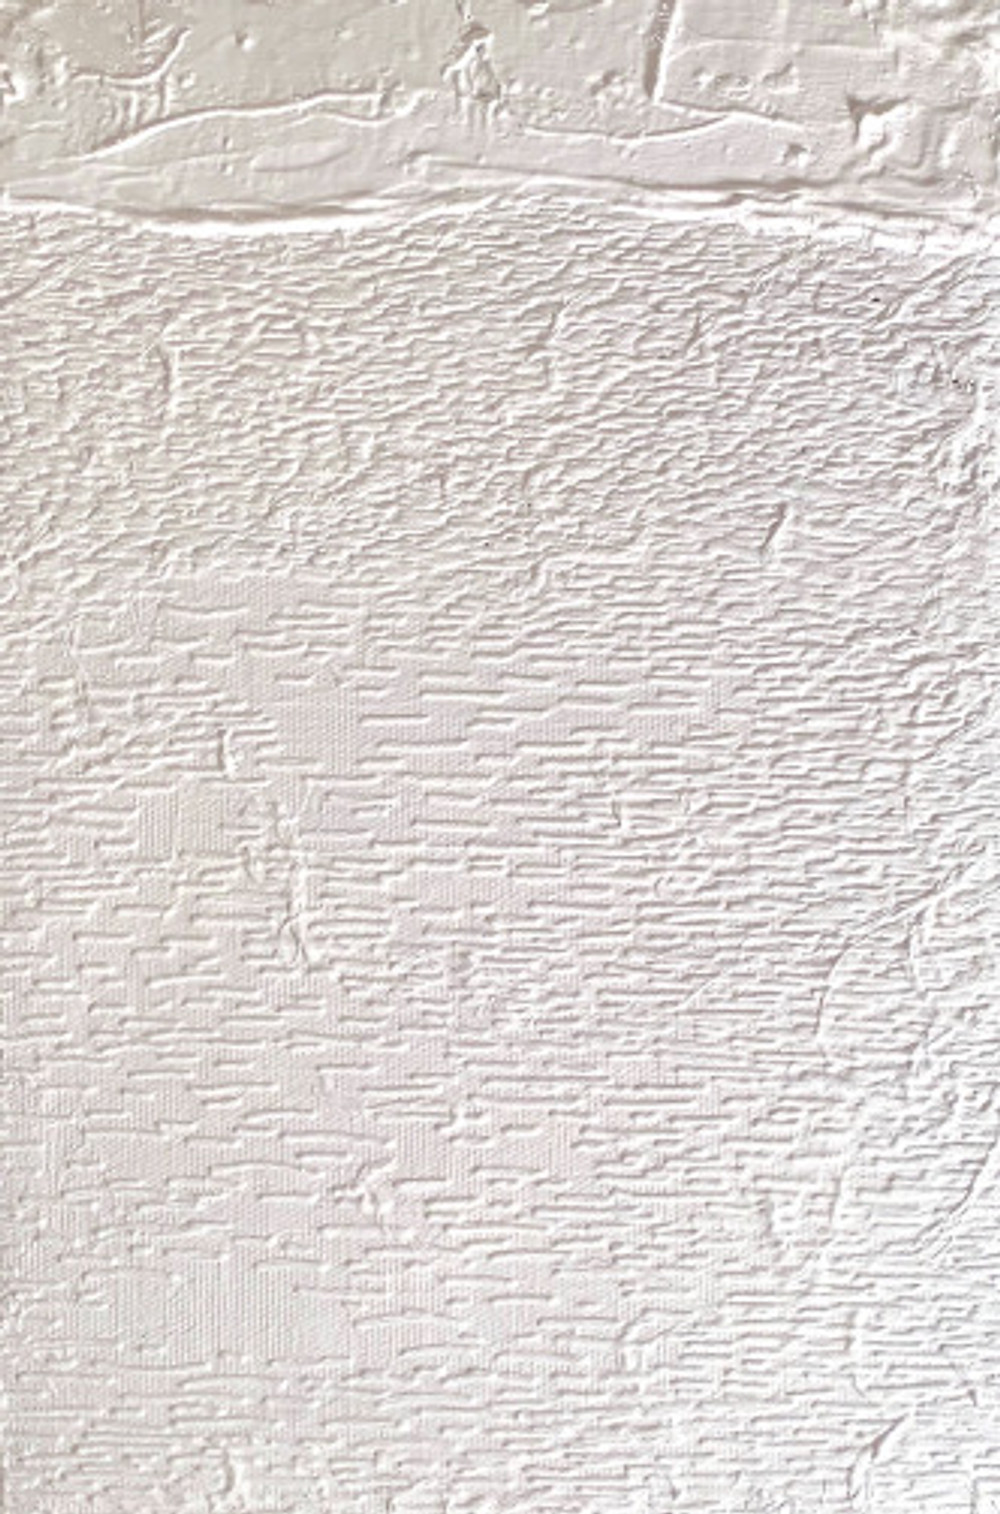 14-White-detail-work in progress-mixed media on canvas-2019